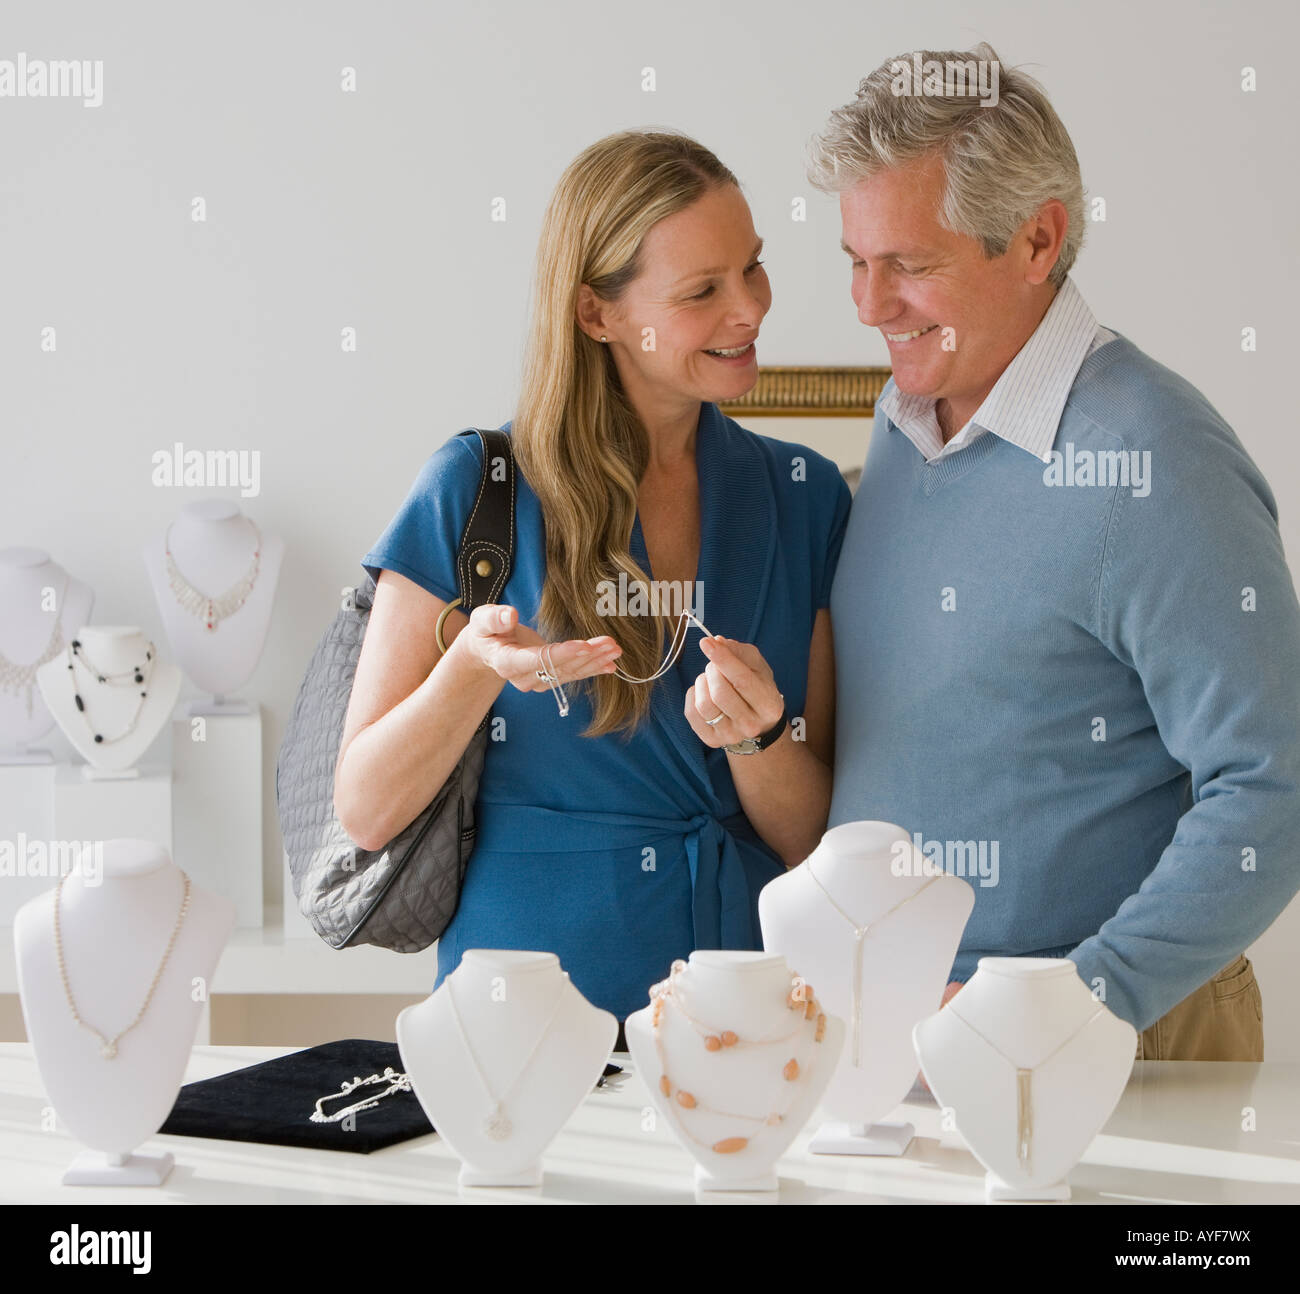 Couple shopping for jewelry - Stock Image